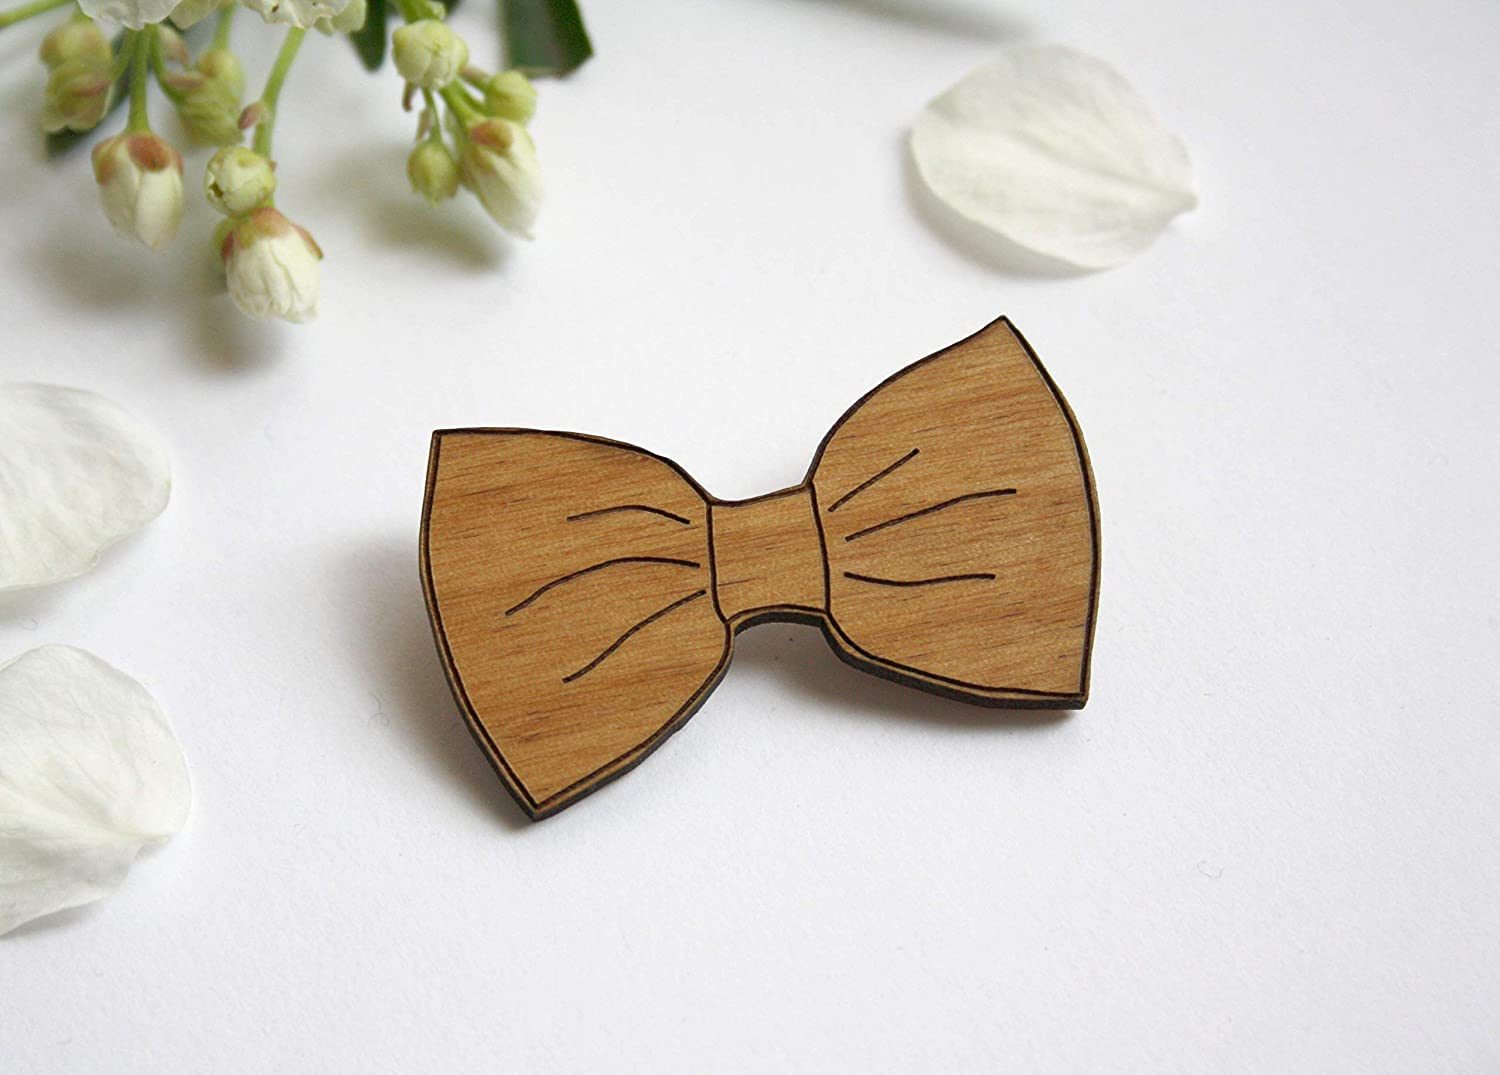 Wooden Limited price sale bow Ranking TOP7 tie brooch wedding engraved accessory wood man or